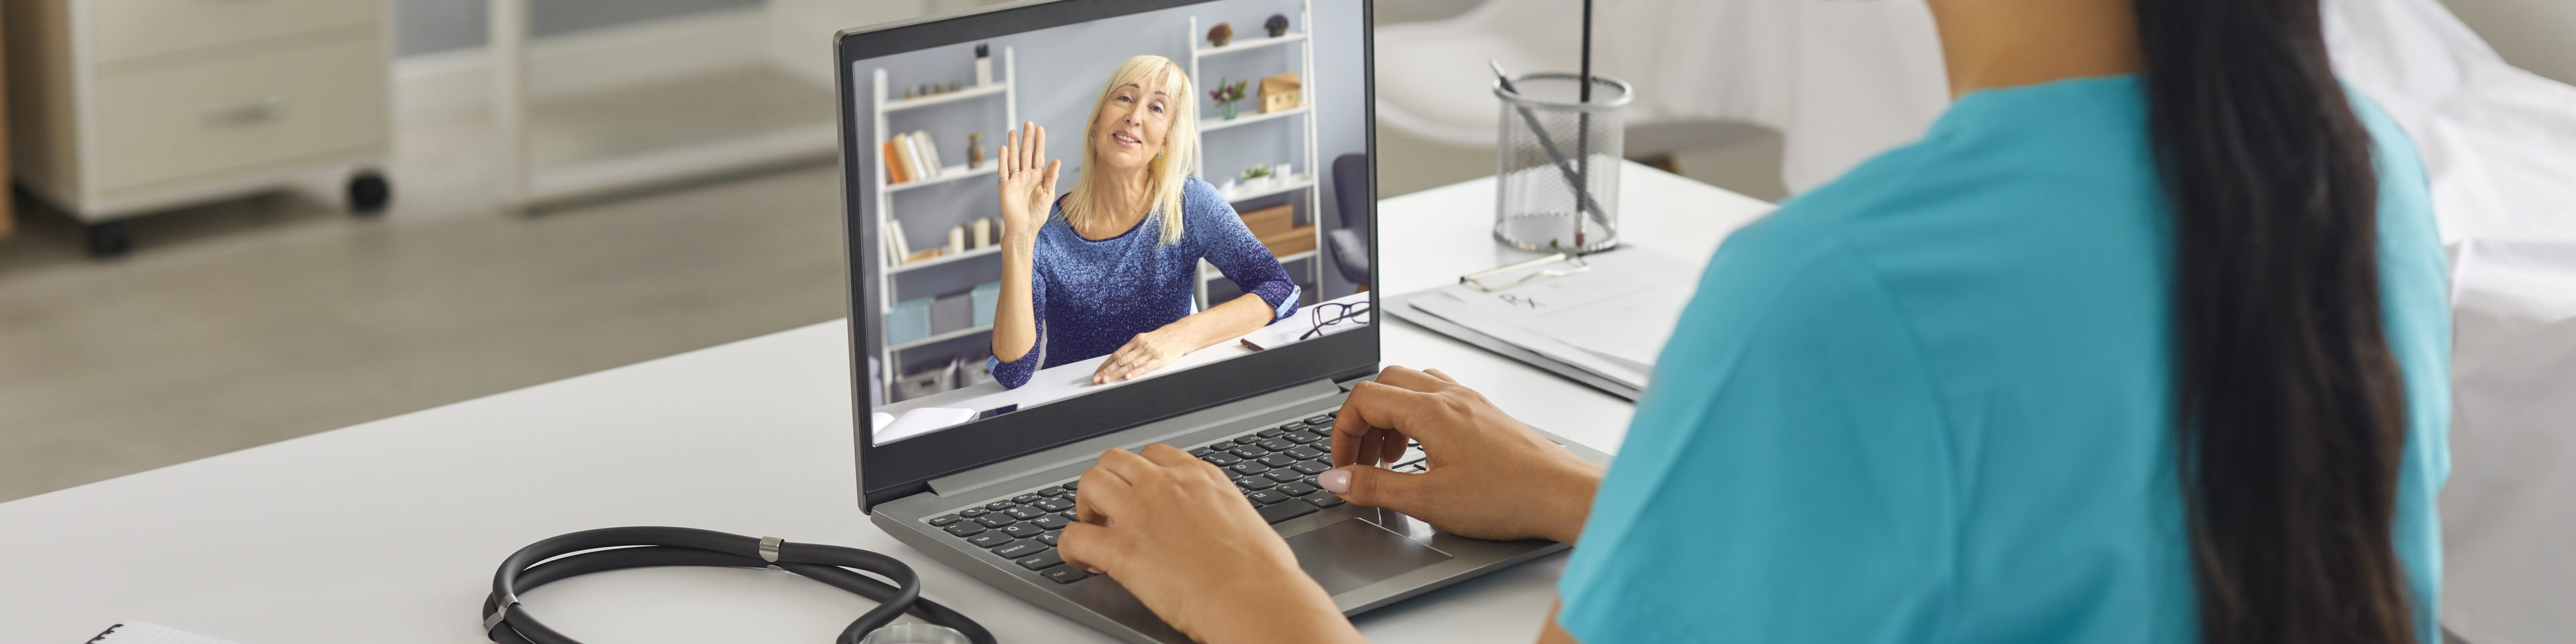 Healthcare worker sitting at desk on laptop with patient, telemedicine/telehealth